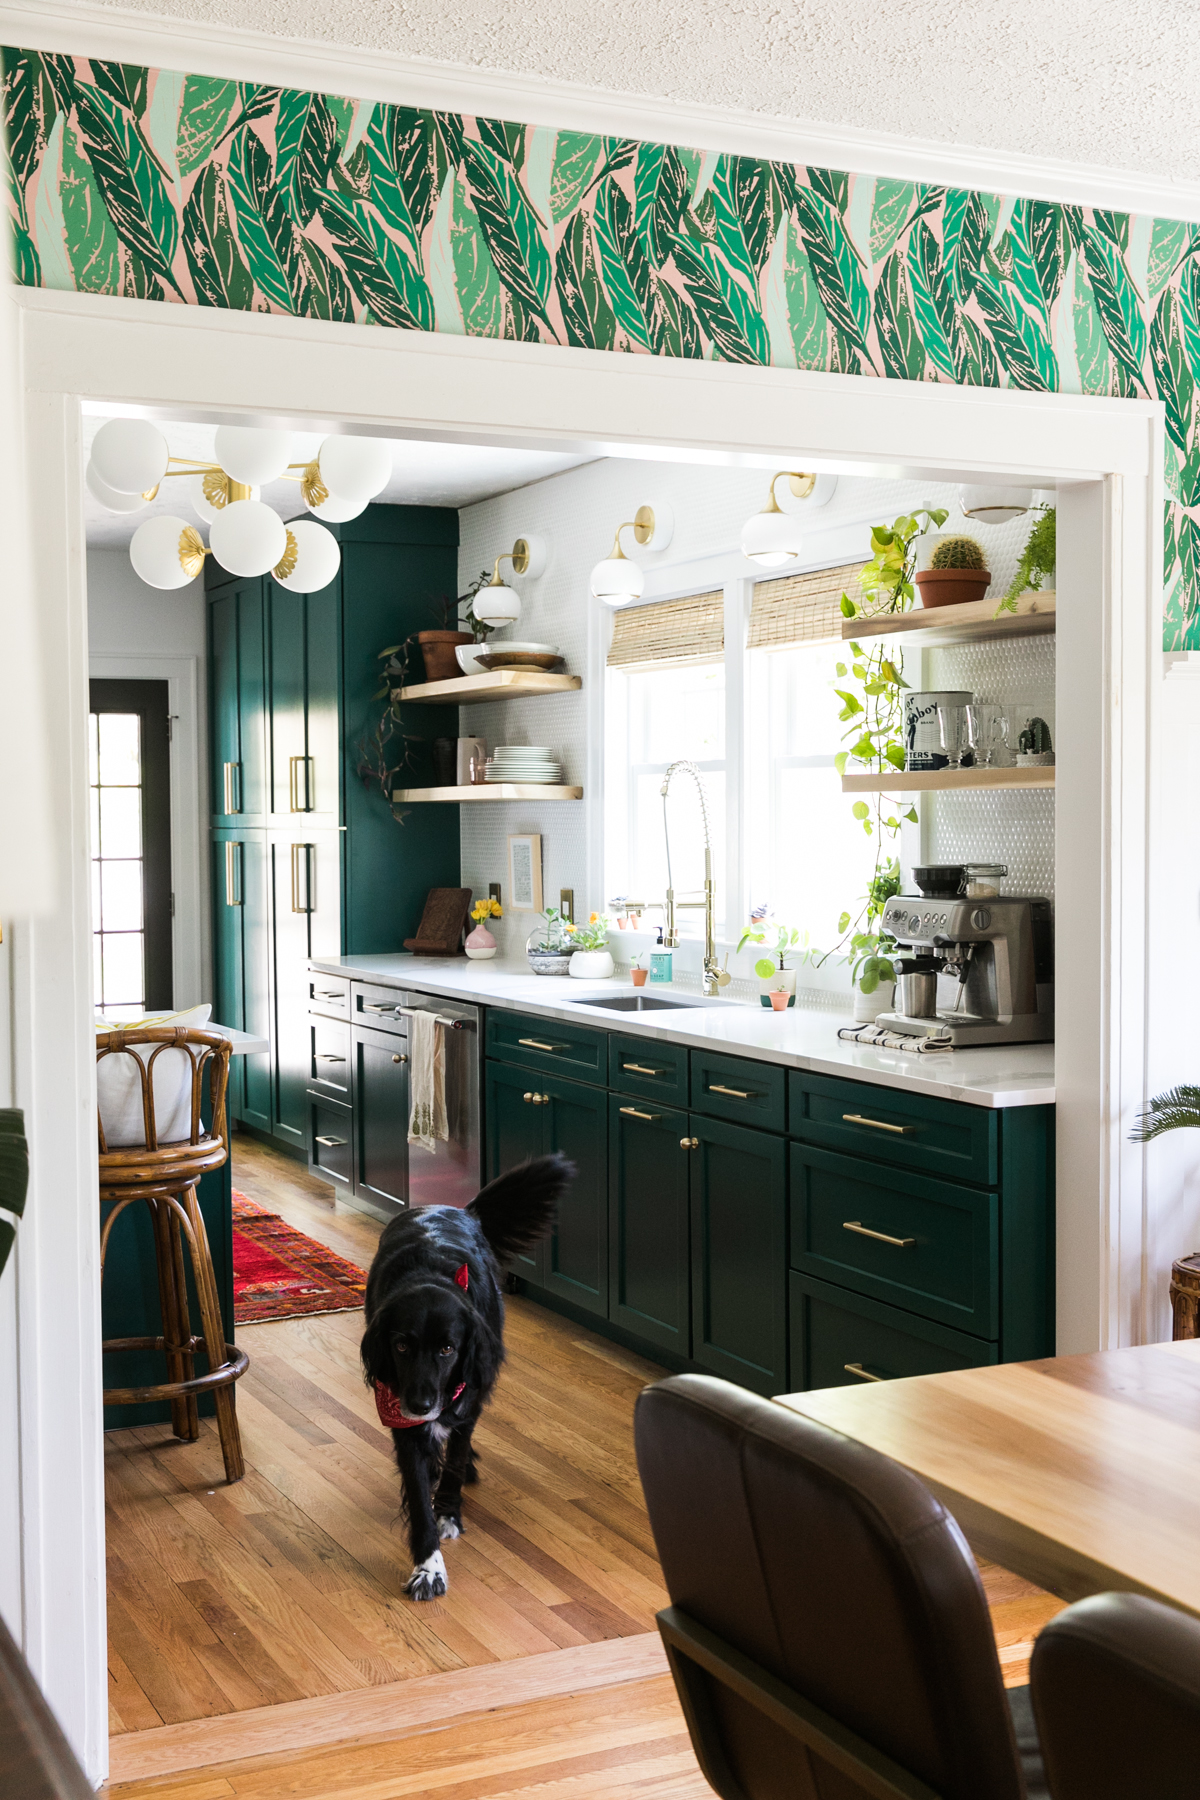 One Room Challenge | Dark Green Kitchen Glamazon | Kitchen Mood Board | Open Kitchen Design | Kitchen Renovation | Jessica Brigham | Magazine Ready for Life | www.jessicabrigham.com